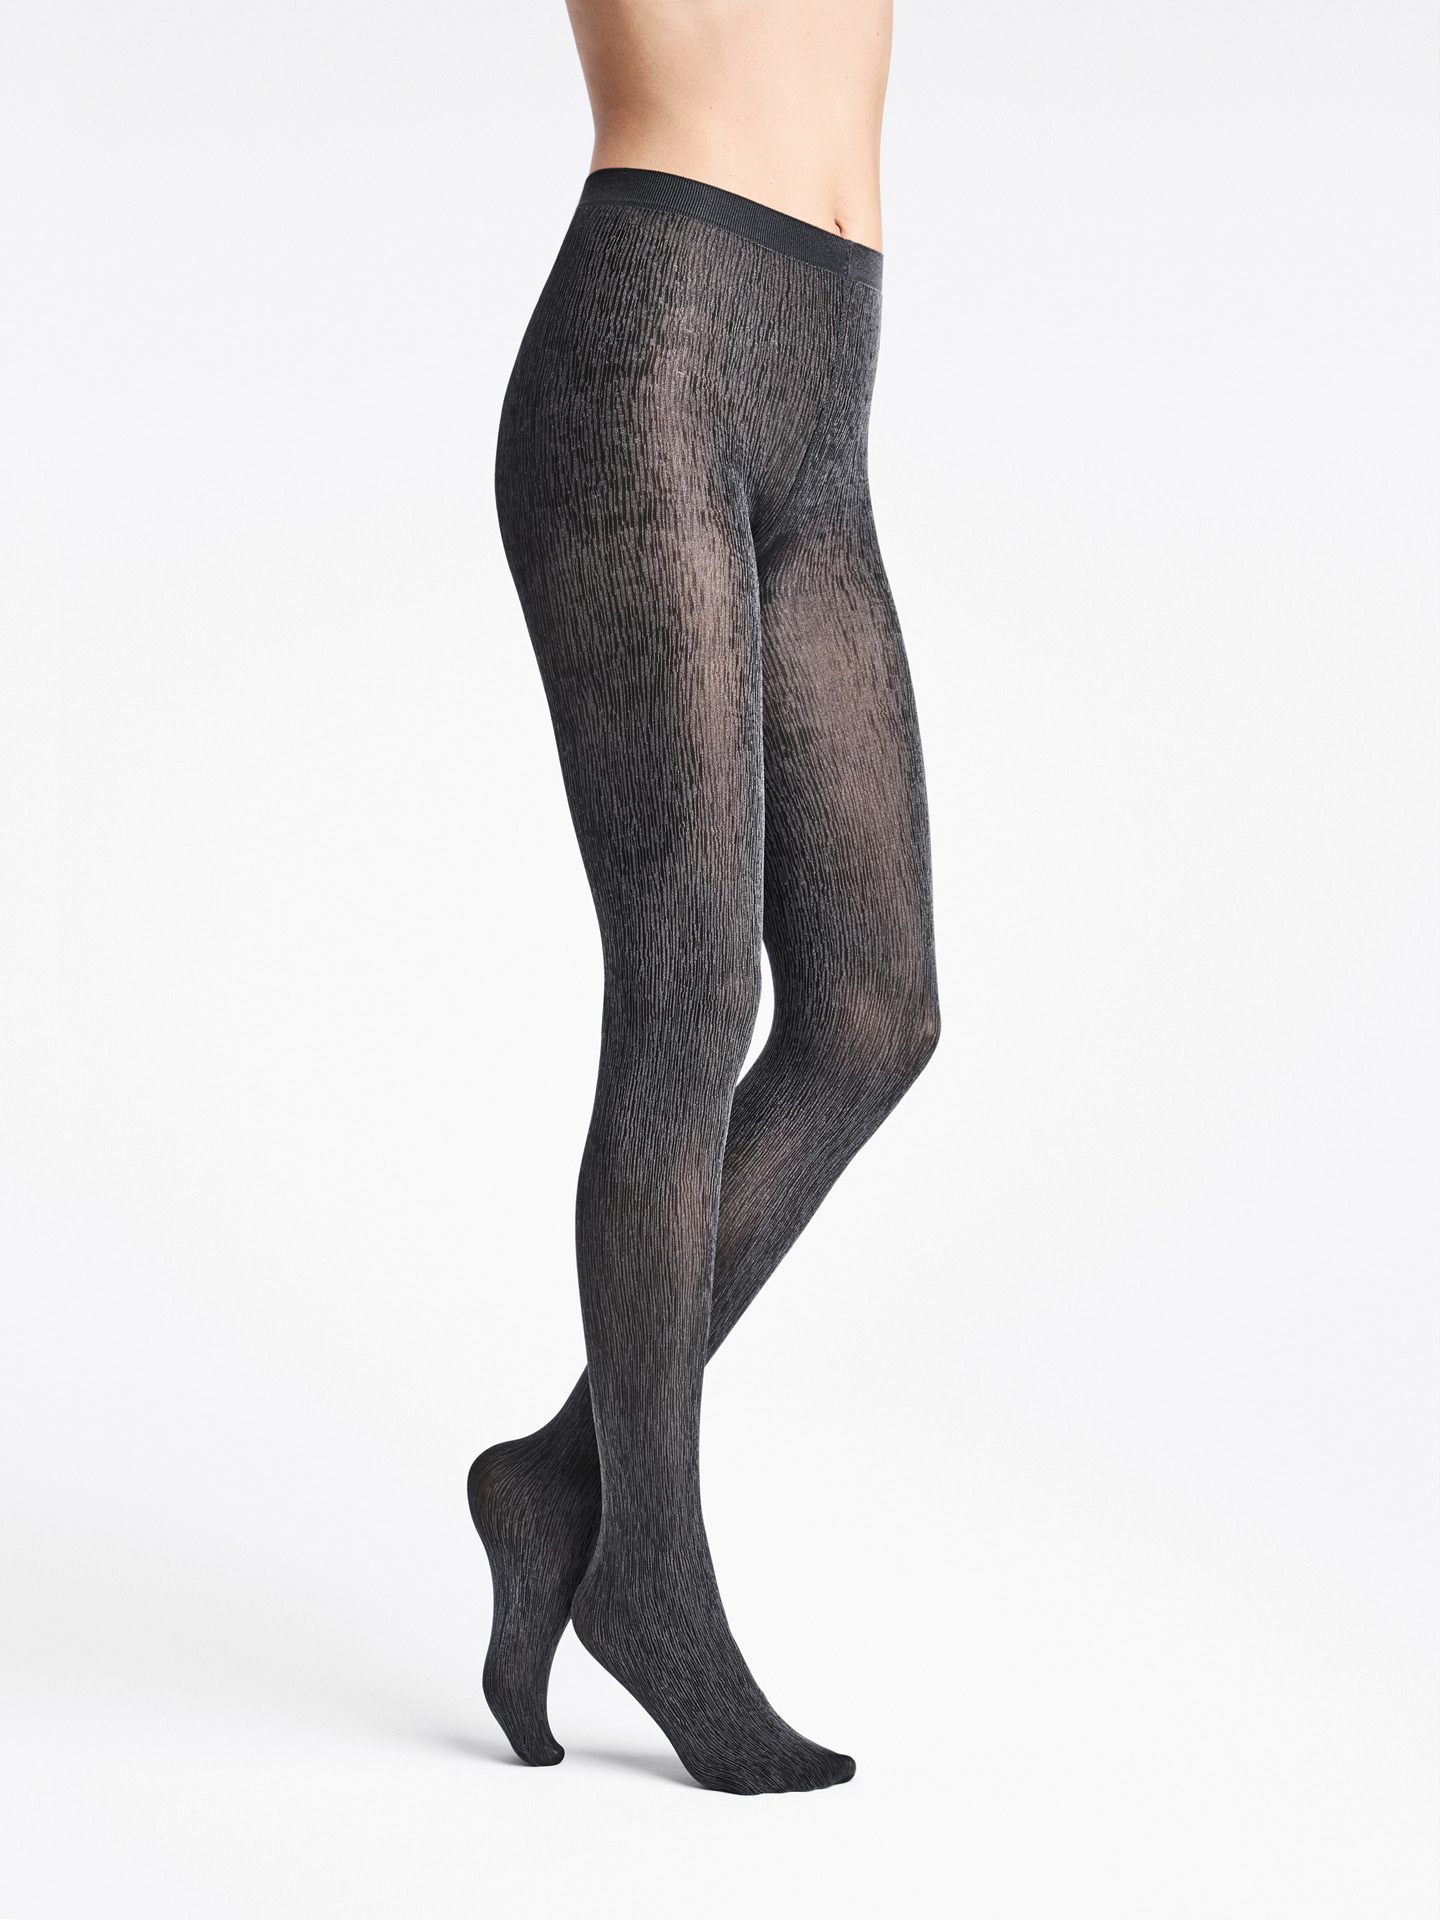 Wolford Apparel & Accessories > Clothing > Calze e Collant Amazonian Poison Tights